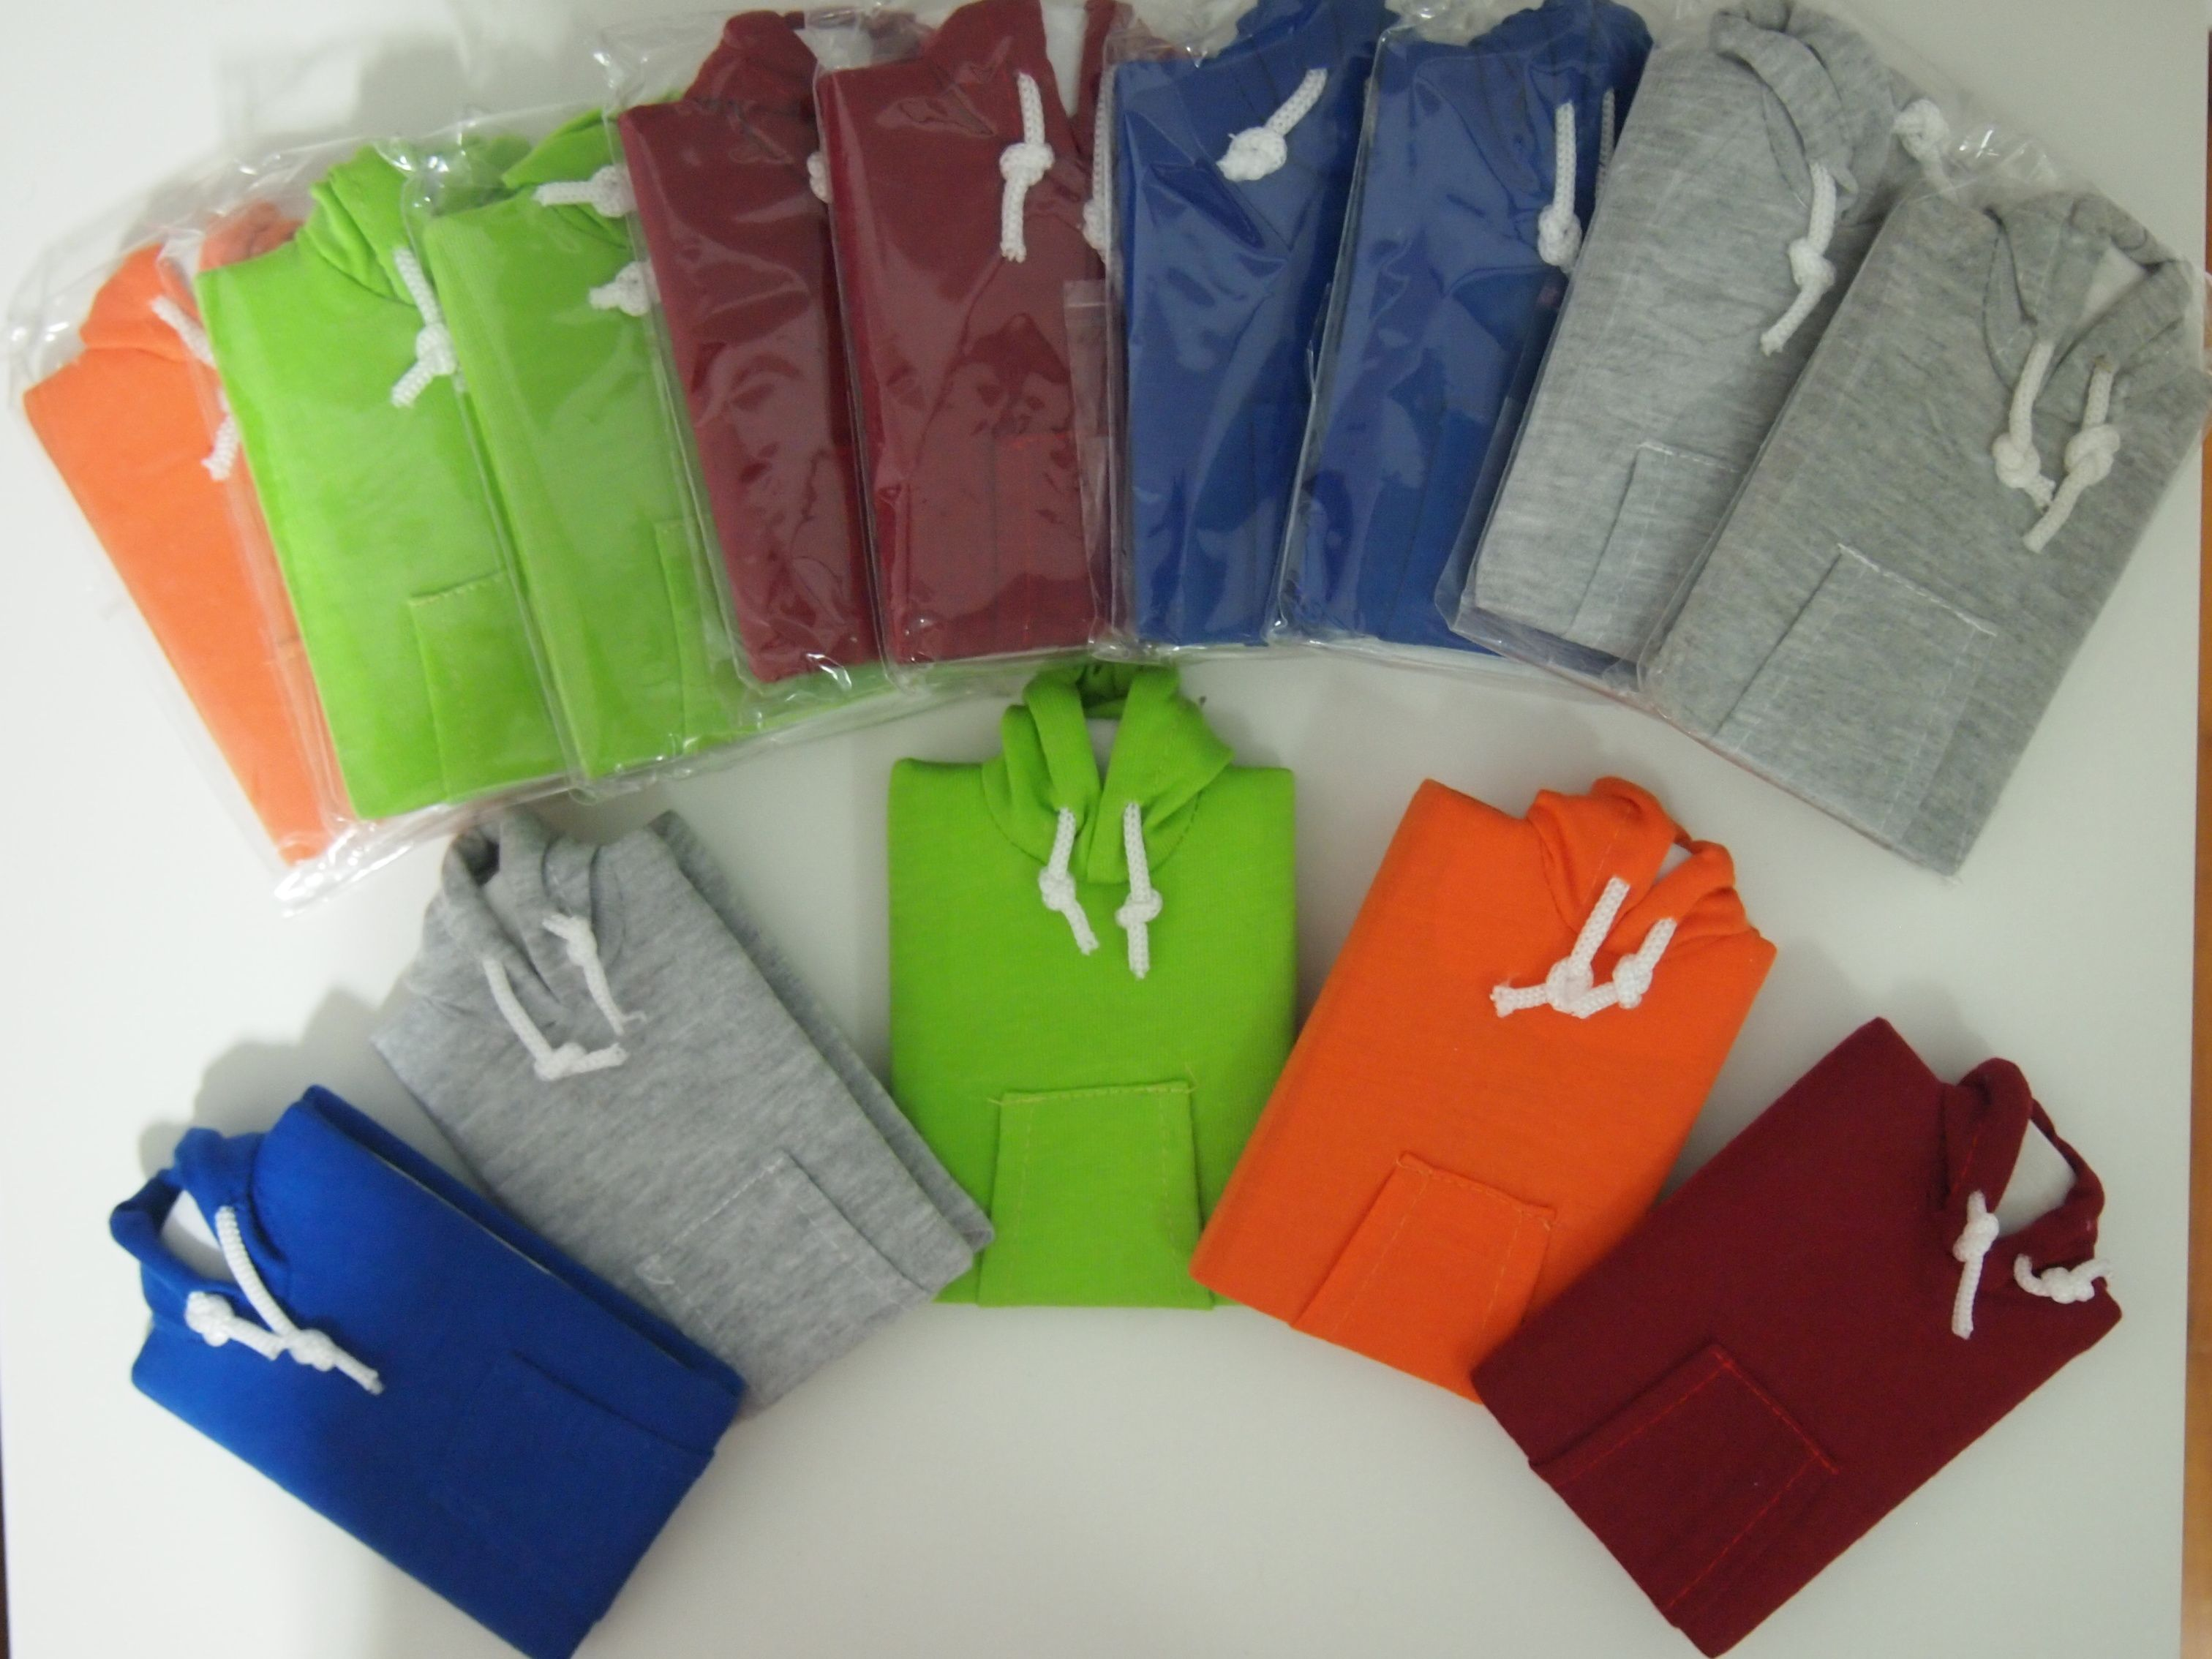 Hoodie Notebook - Overview of the colours available! Dimensions: 12 cm(Height) X 8.5 cm(width)  #hilivre #hoodie #notebook  #green #orange #grey #maroon #blue #diary #planner #handcrafted #korea